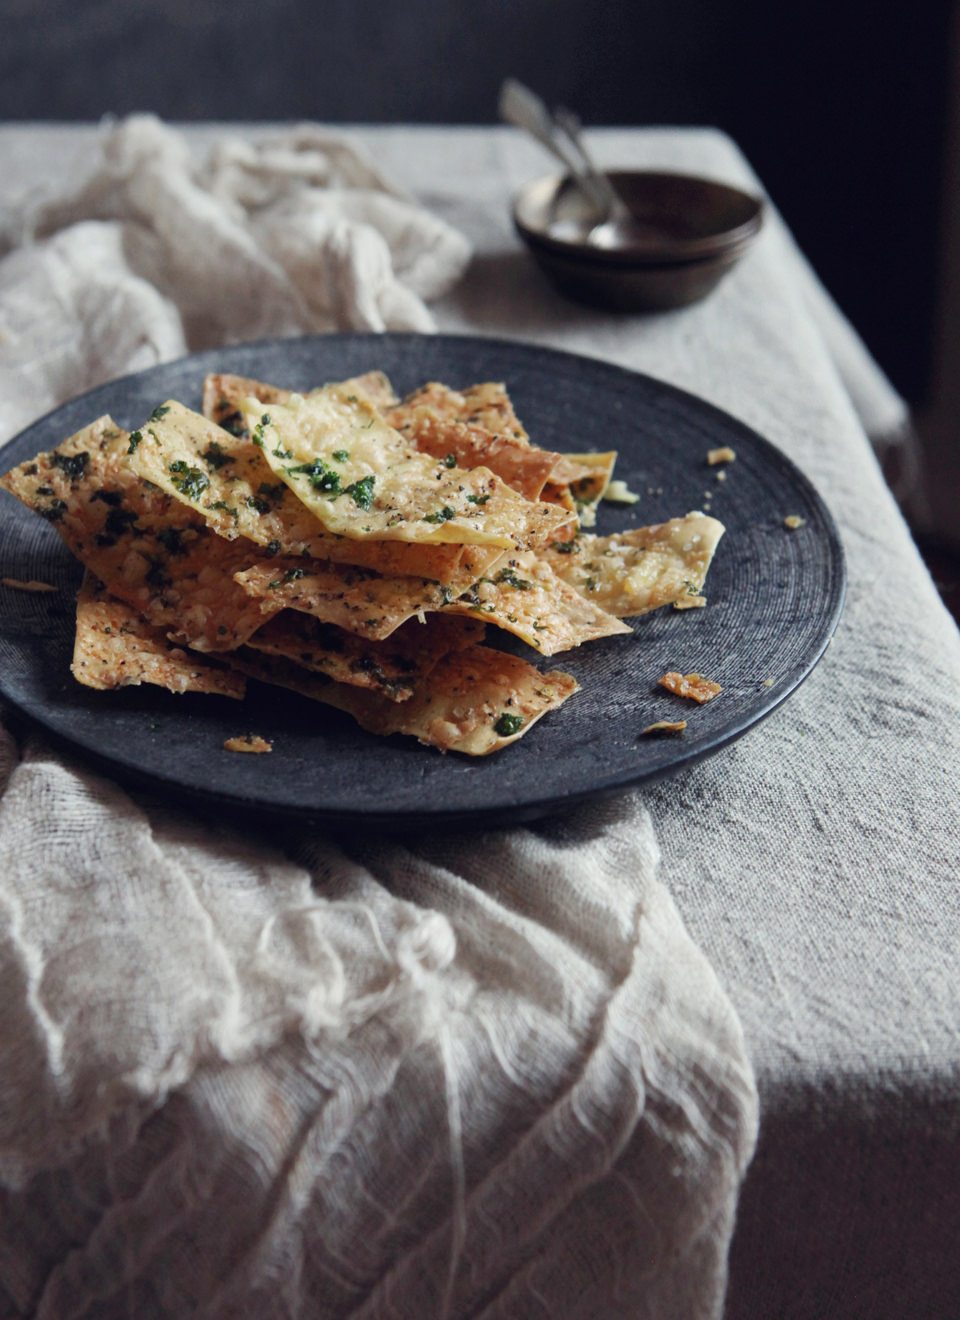 Crispy-Baked-Wonton-Crackers-with-Parmesan-Cheese-&-Garlic-2